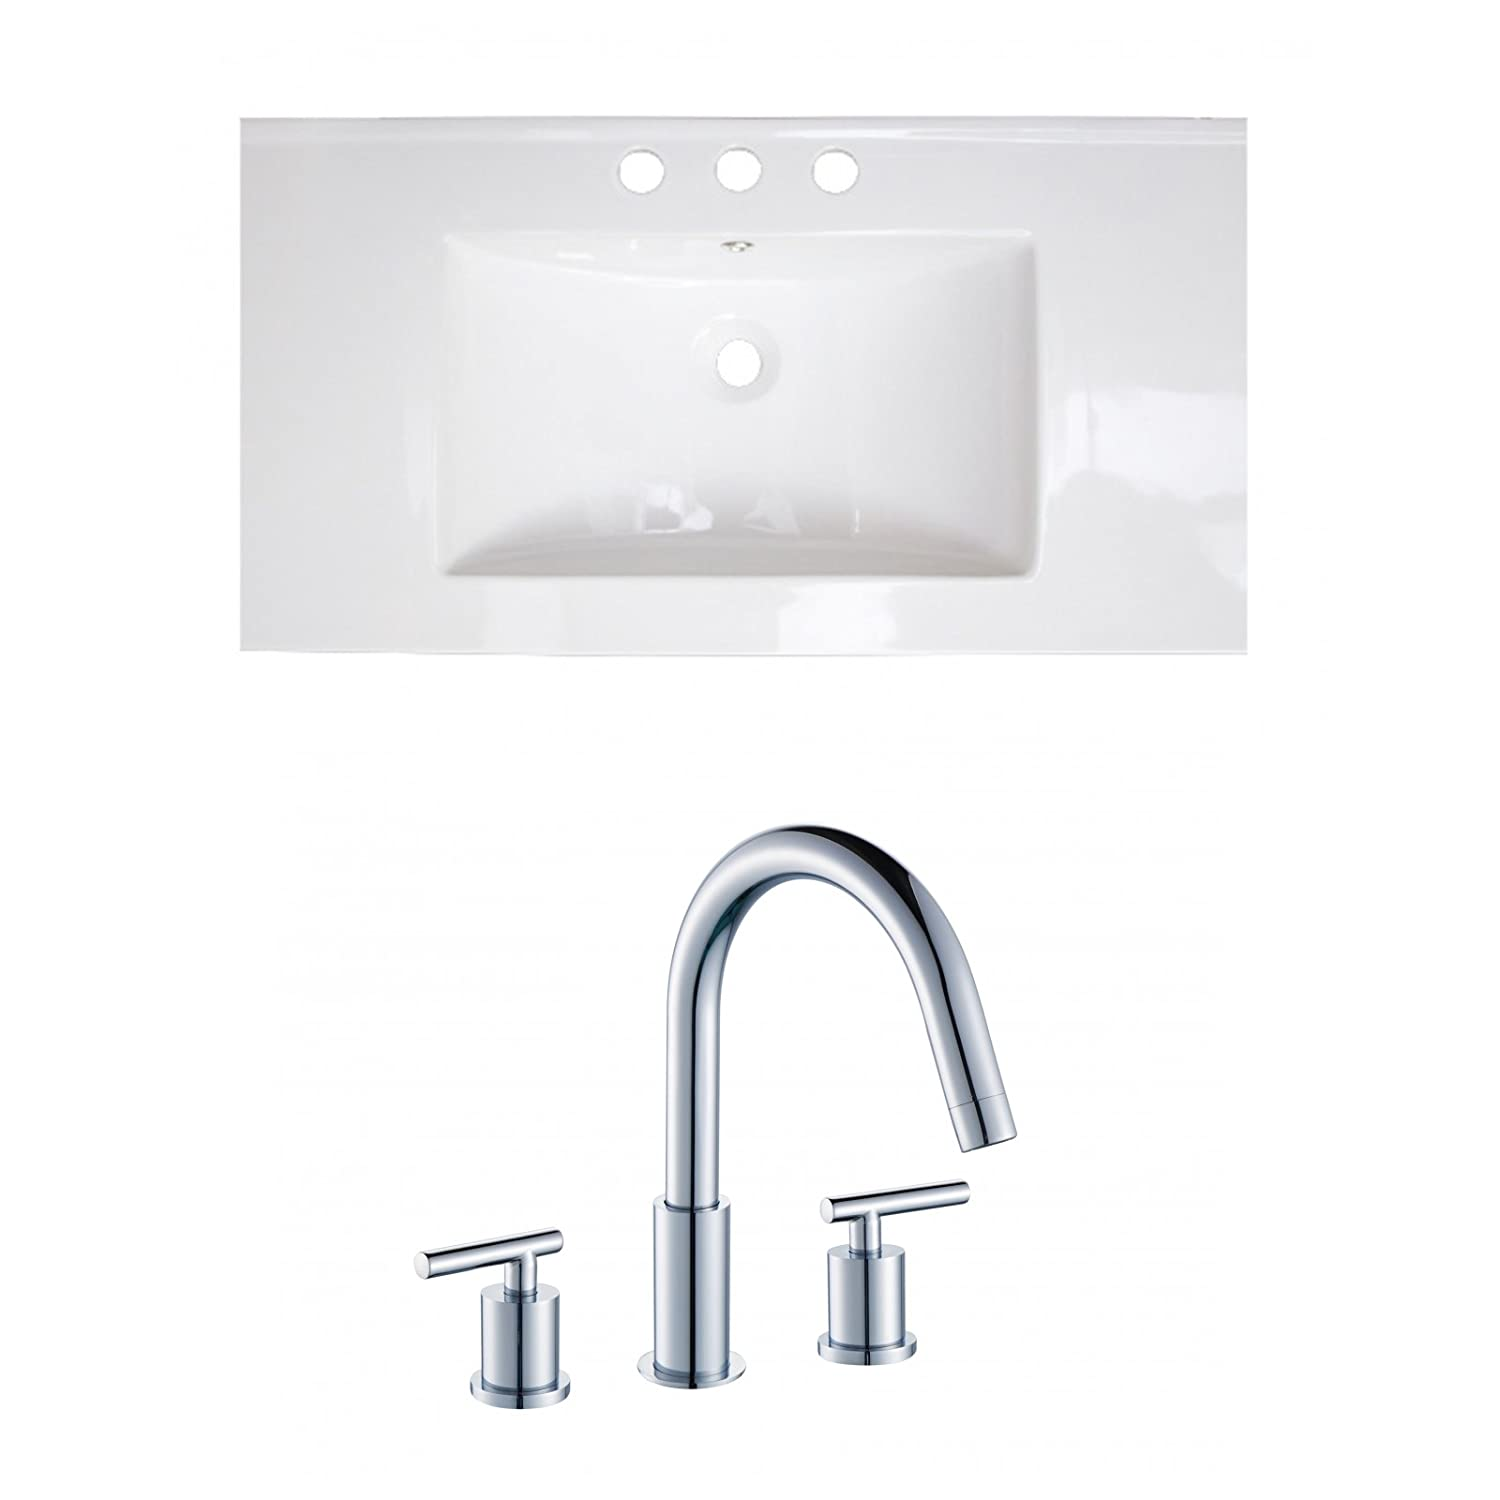 "Jade Bath JB-15636 36"" W x 20"" D Ceramic Top Set with 8"" o.c. CUPC Faucet, White chic"